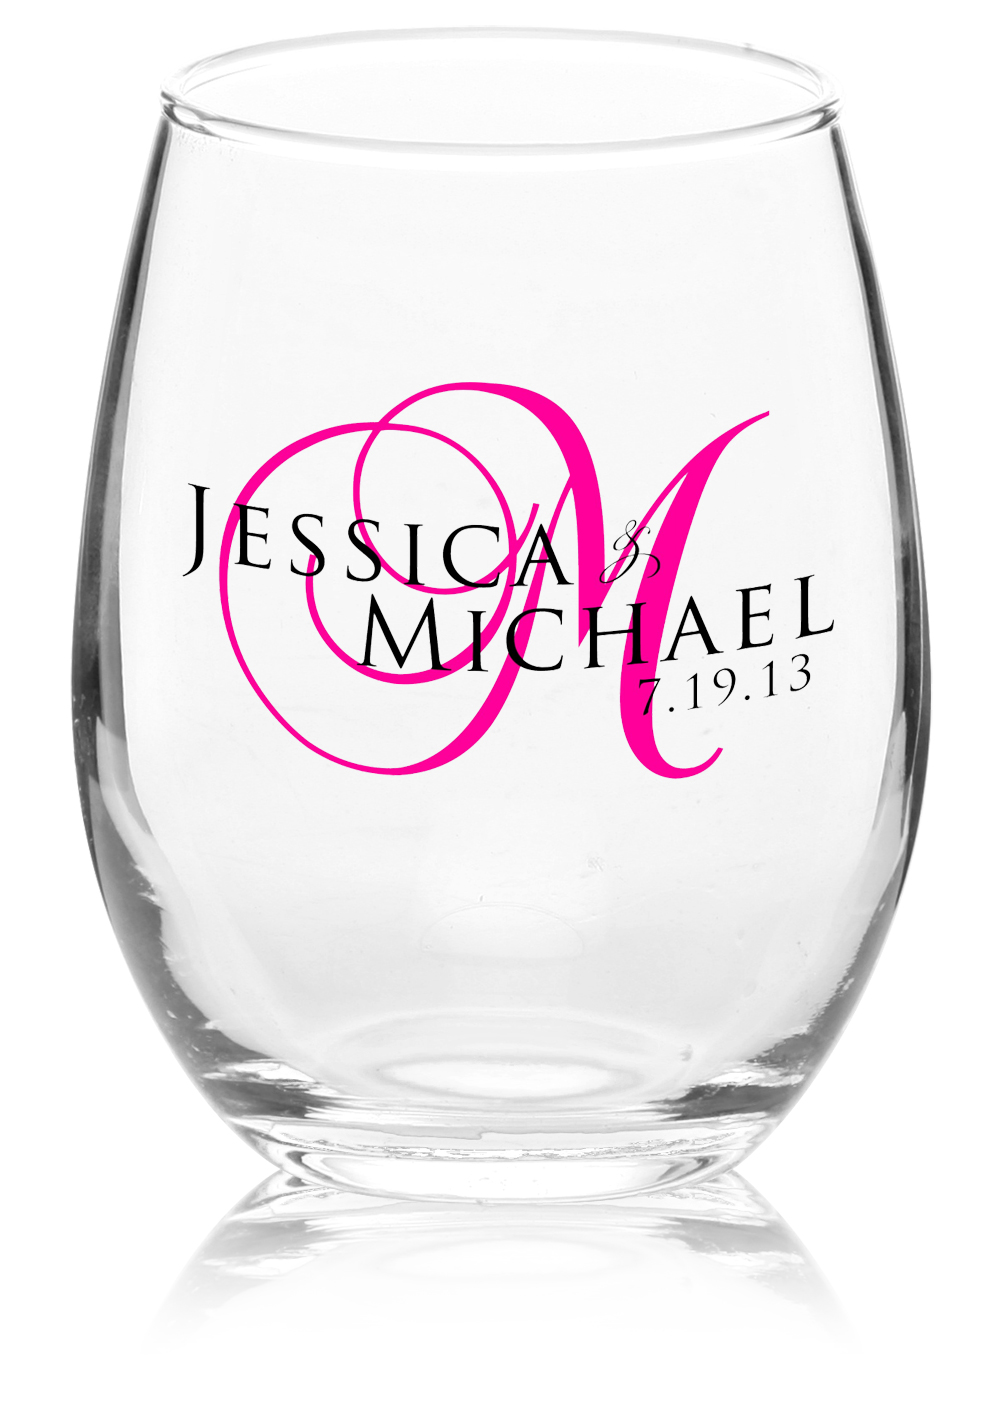 Etched Wine Glasses Wedding Gifts : Custom Stemless Wine Glasses - Personalized Wine Glasses